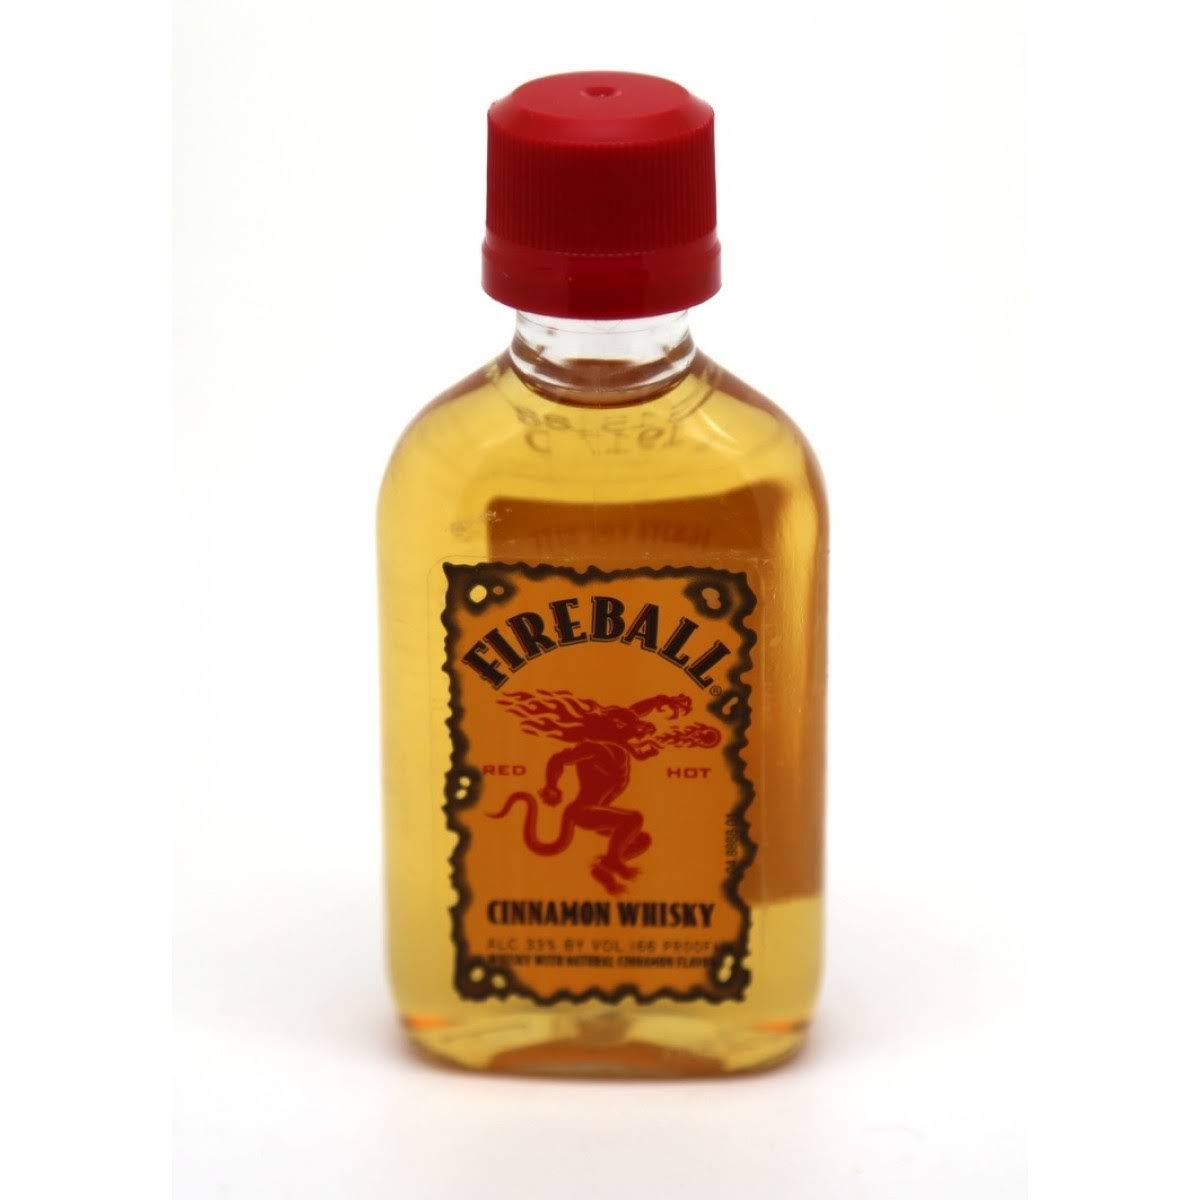 Fireball Cinnamon Whisky - 50ml